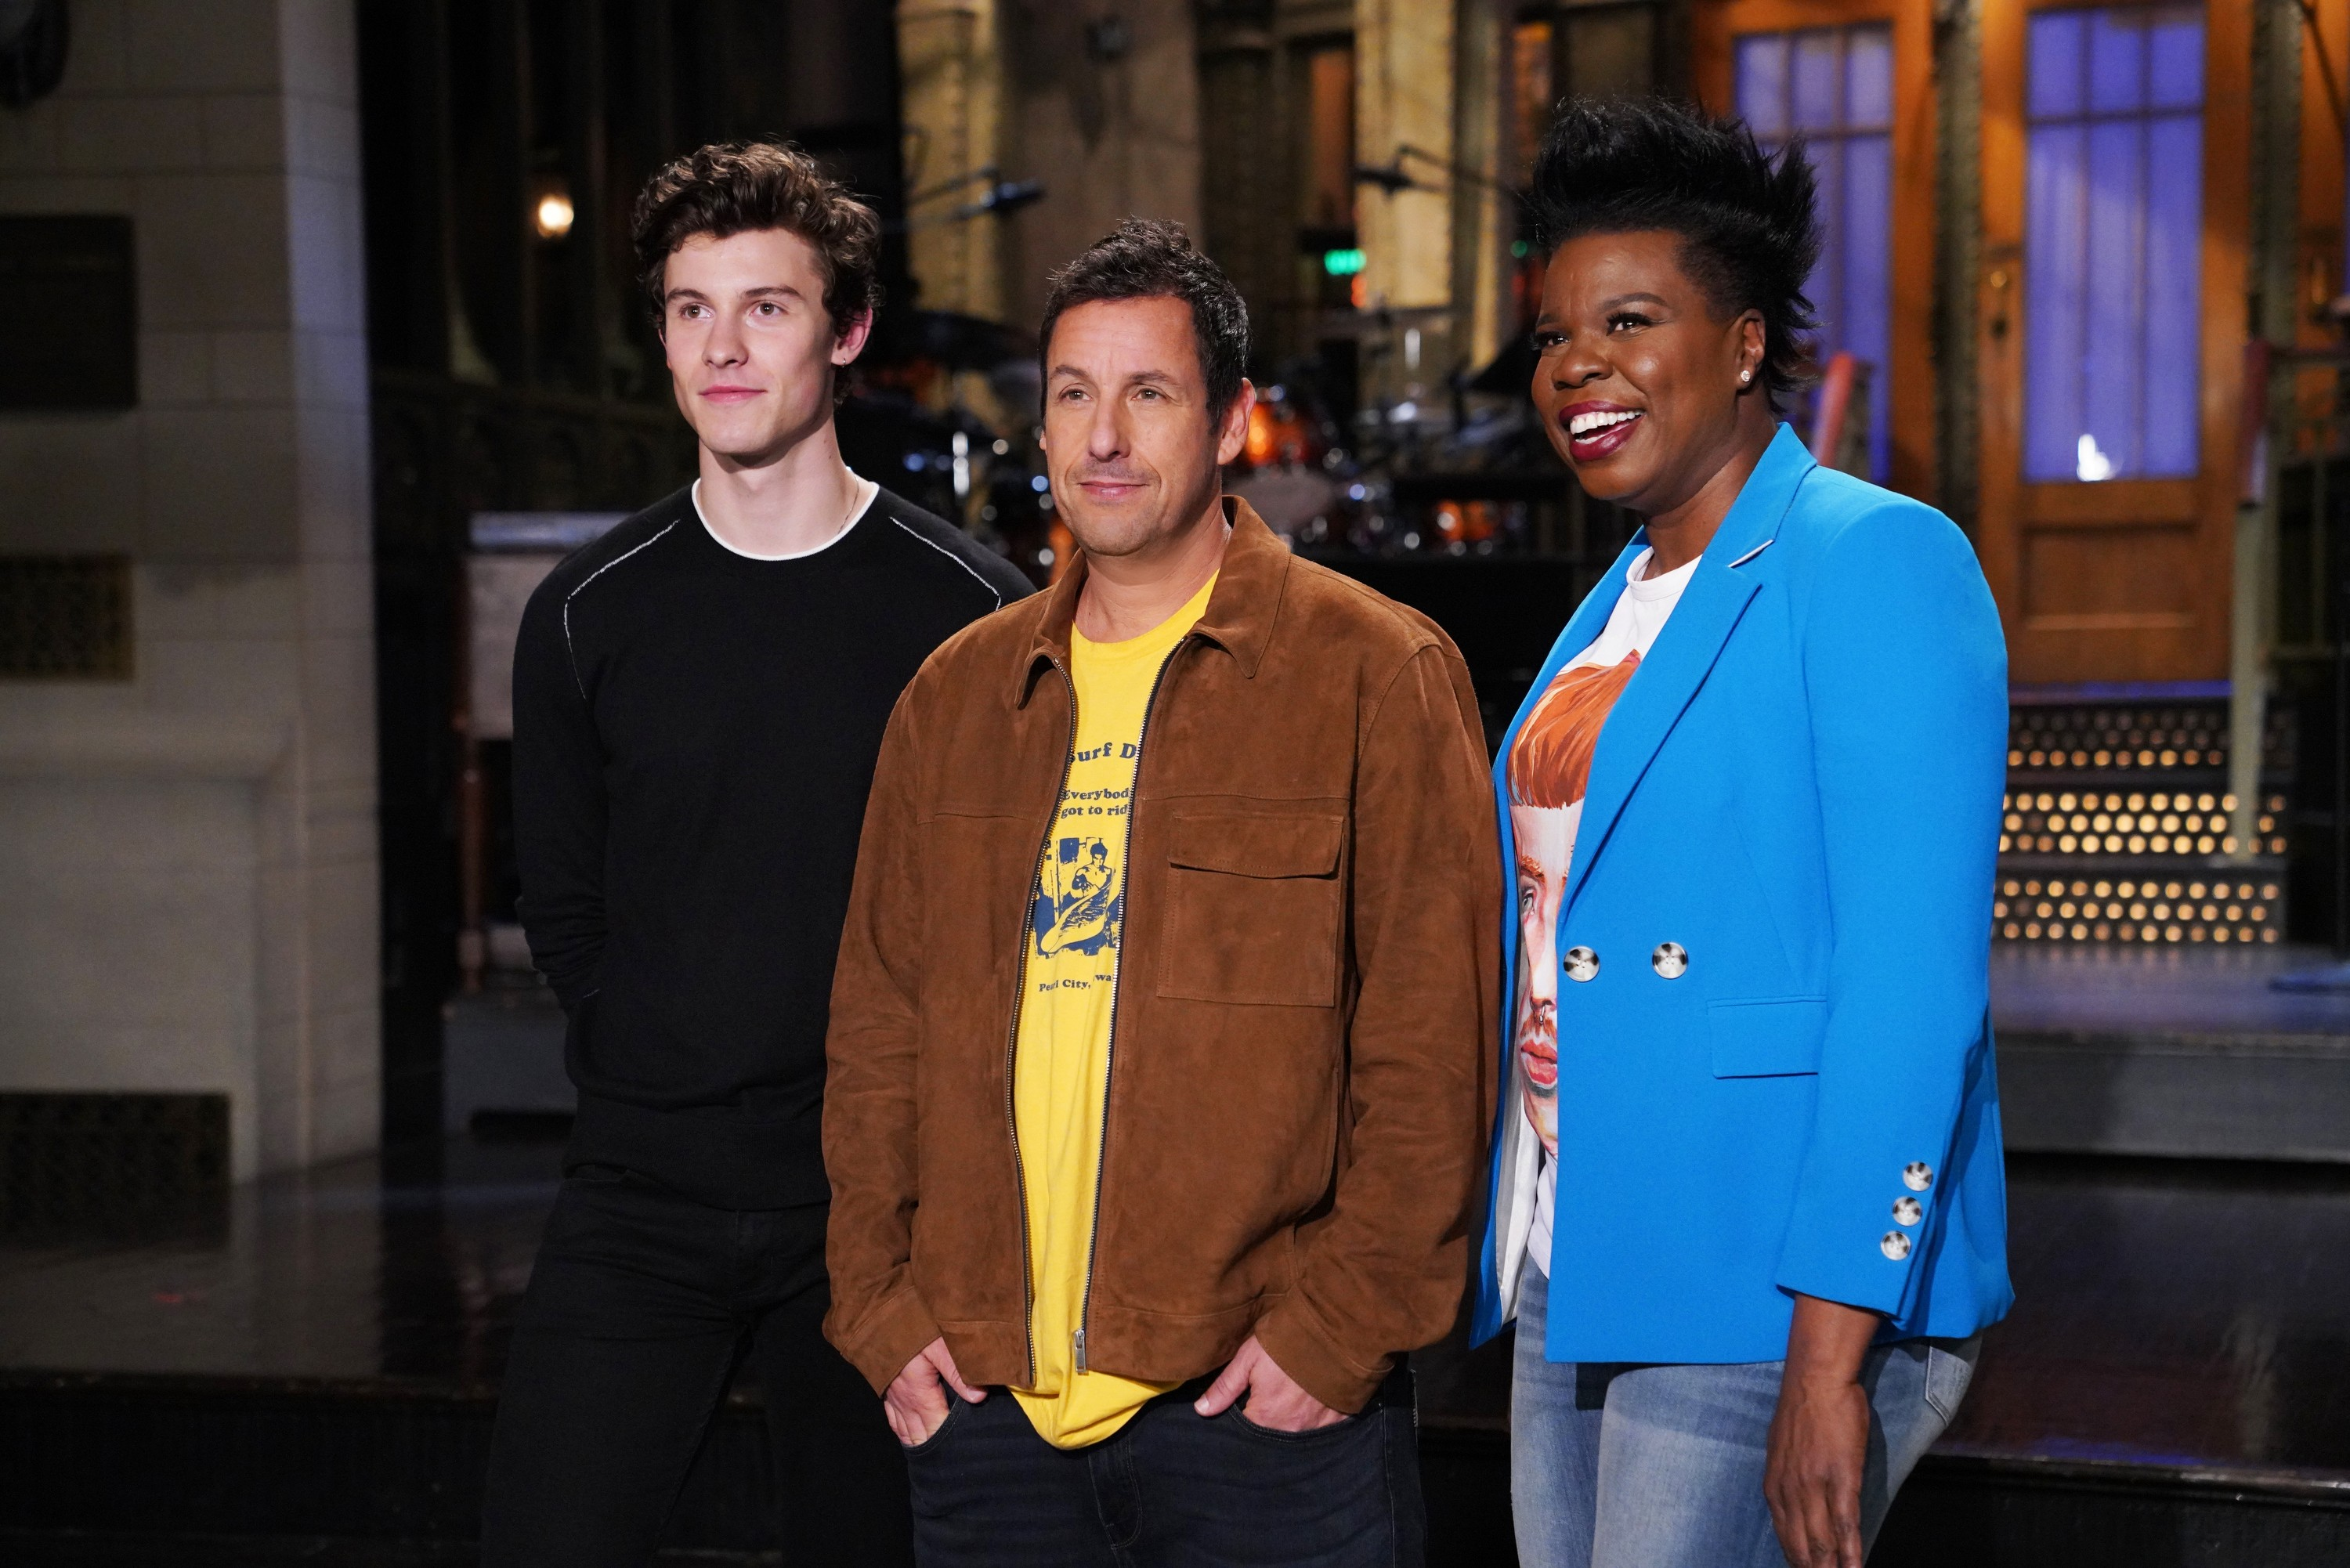 shawn-mendes-performs-if-i-cant-have-you-and-in-my-blood-on-snl-watch